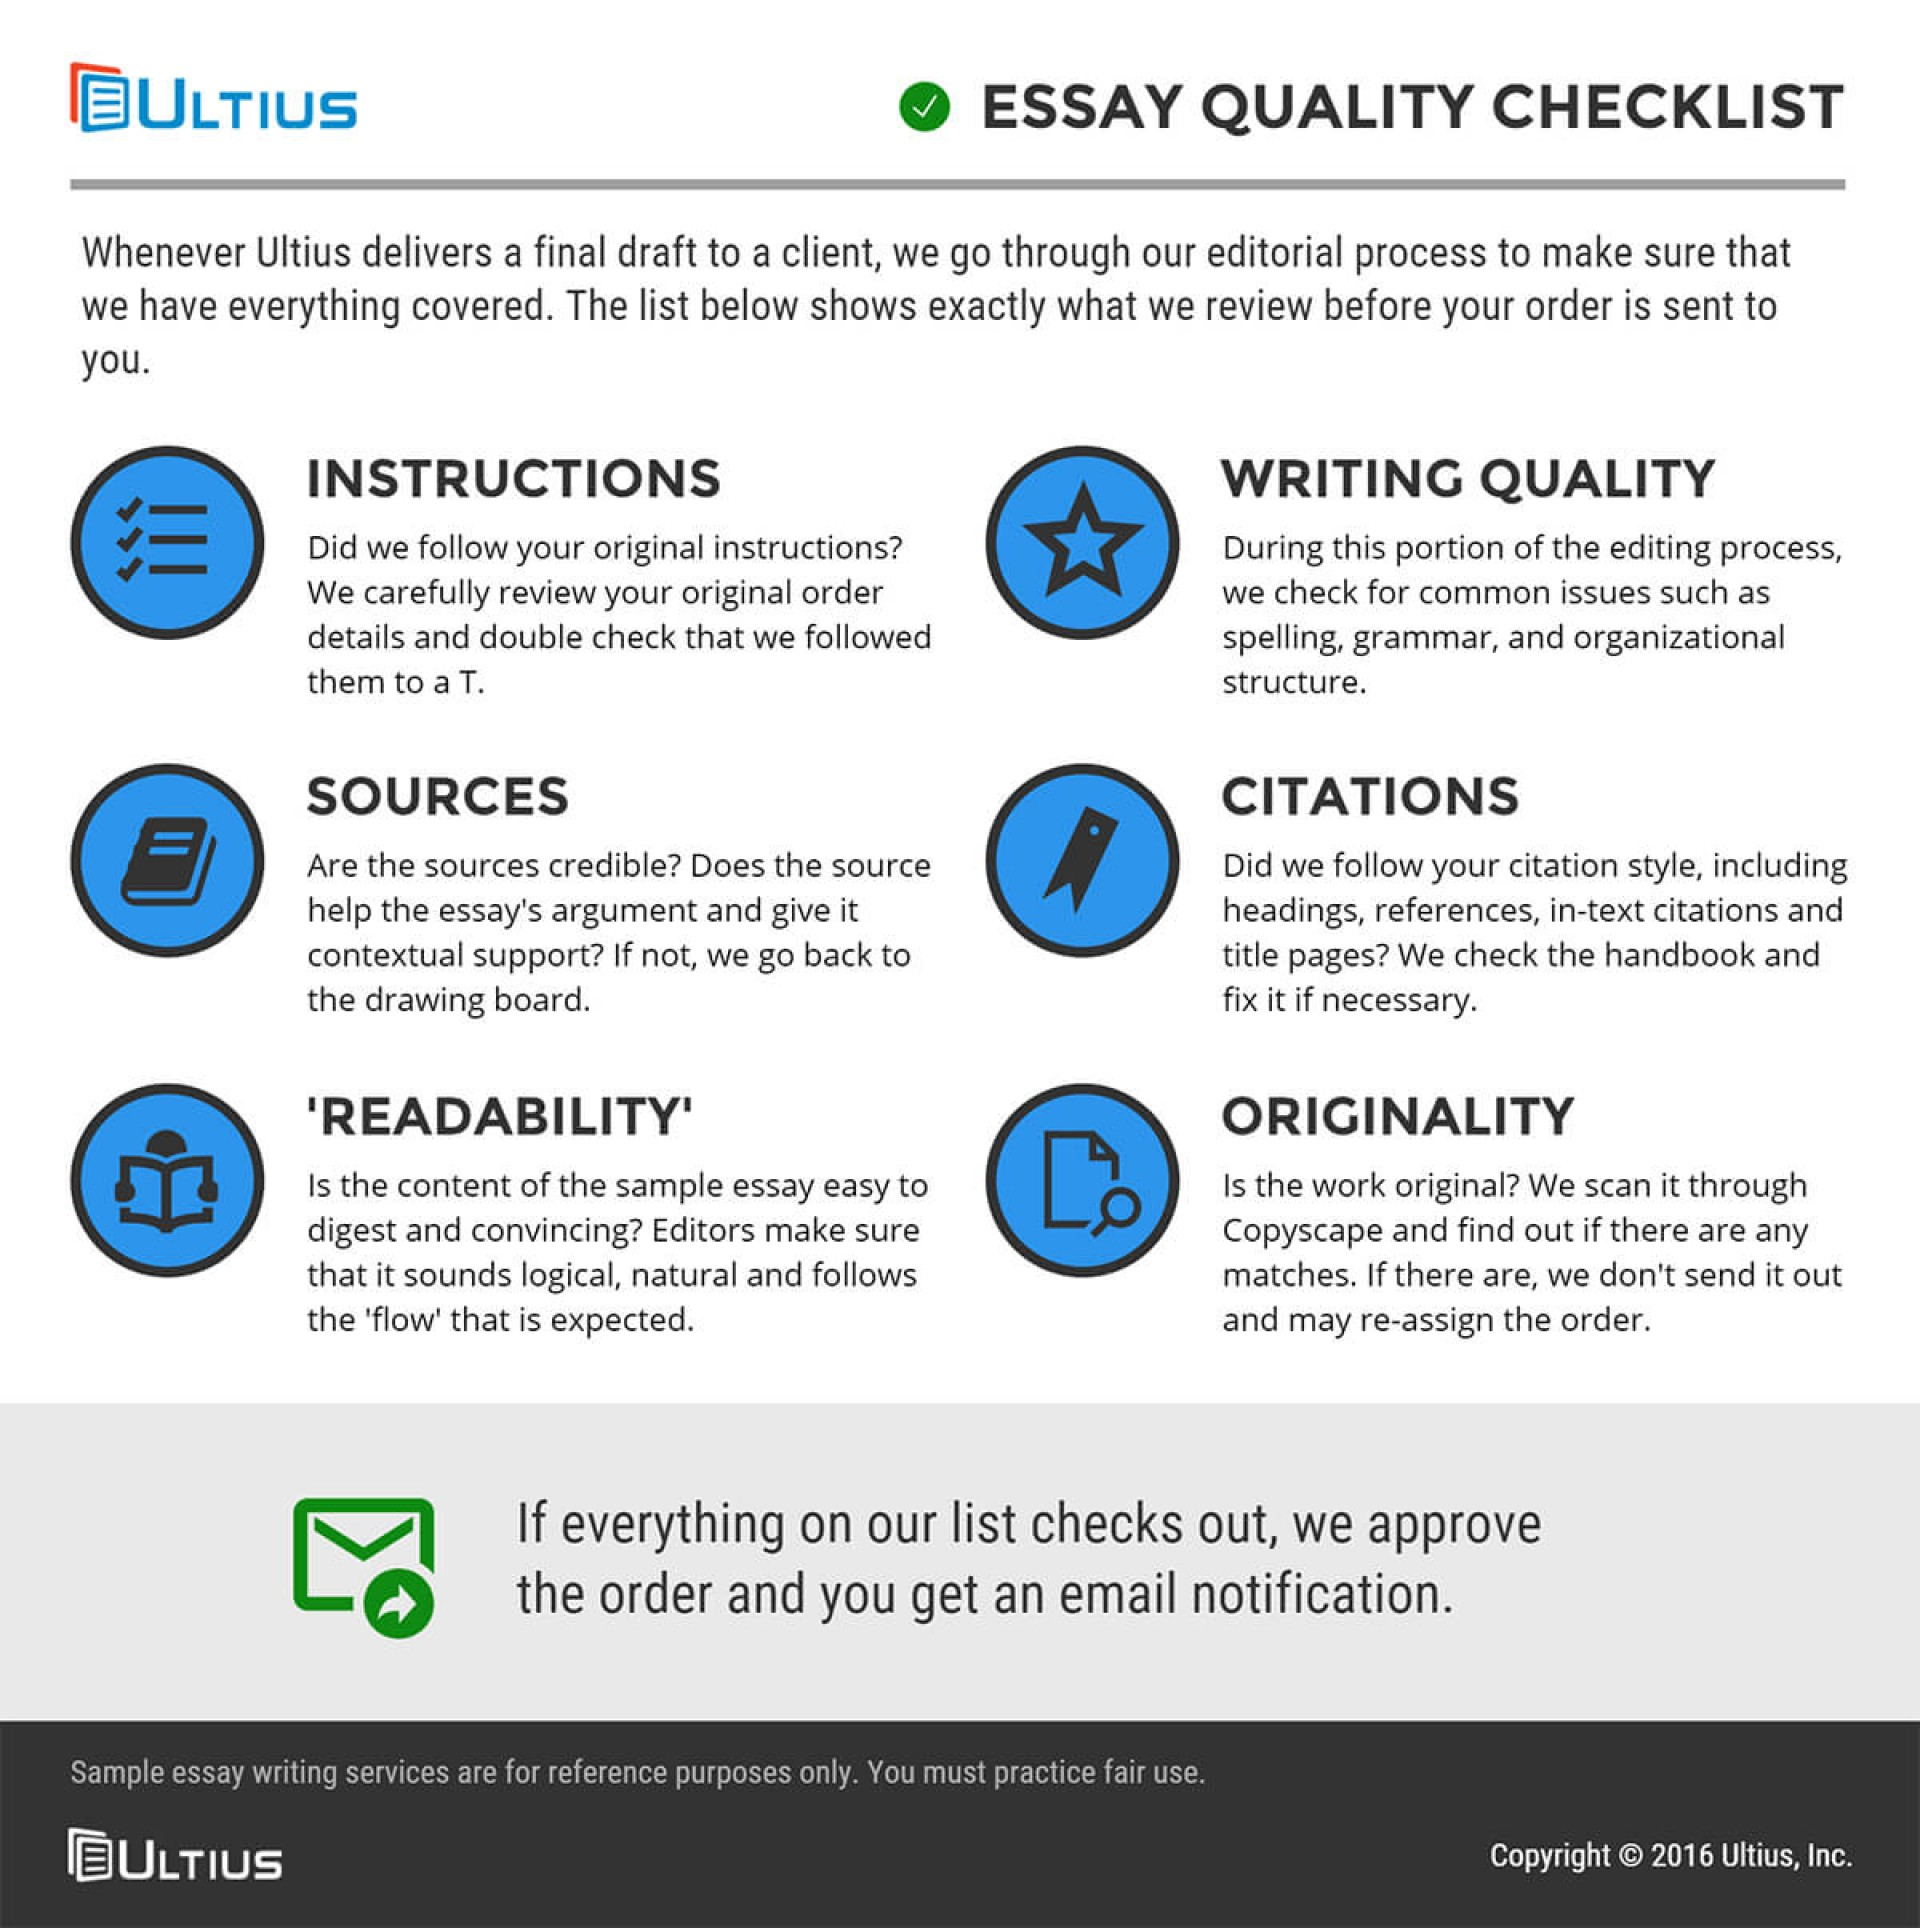 014 Essay Example Purchased Quality Checklist Dreaded Persuasive Speech Topics For Elementary Outline Rubric 10th Grade 1920